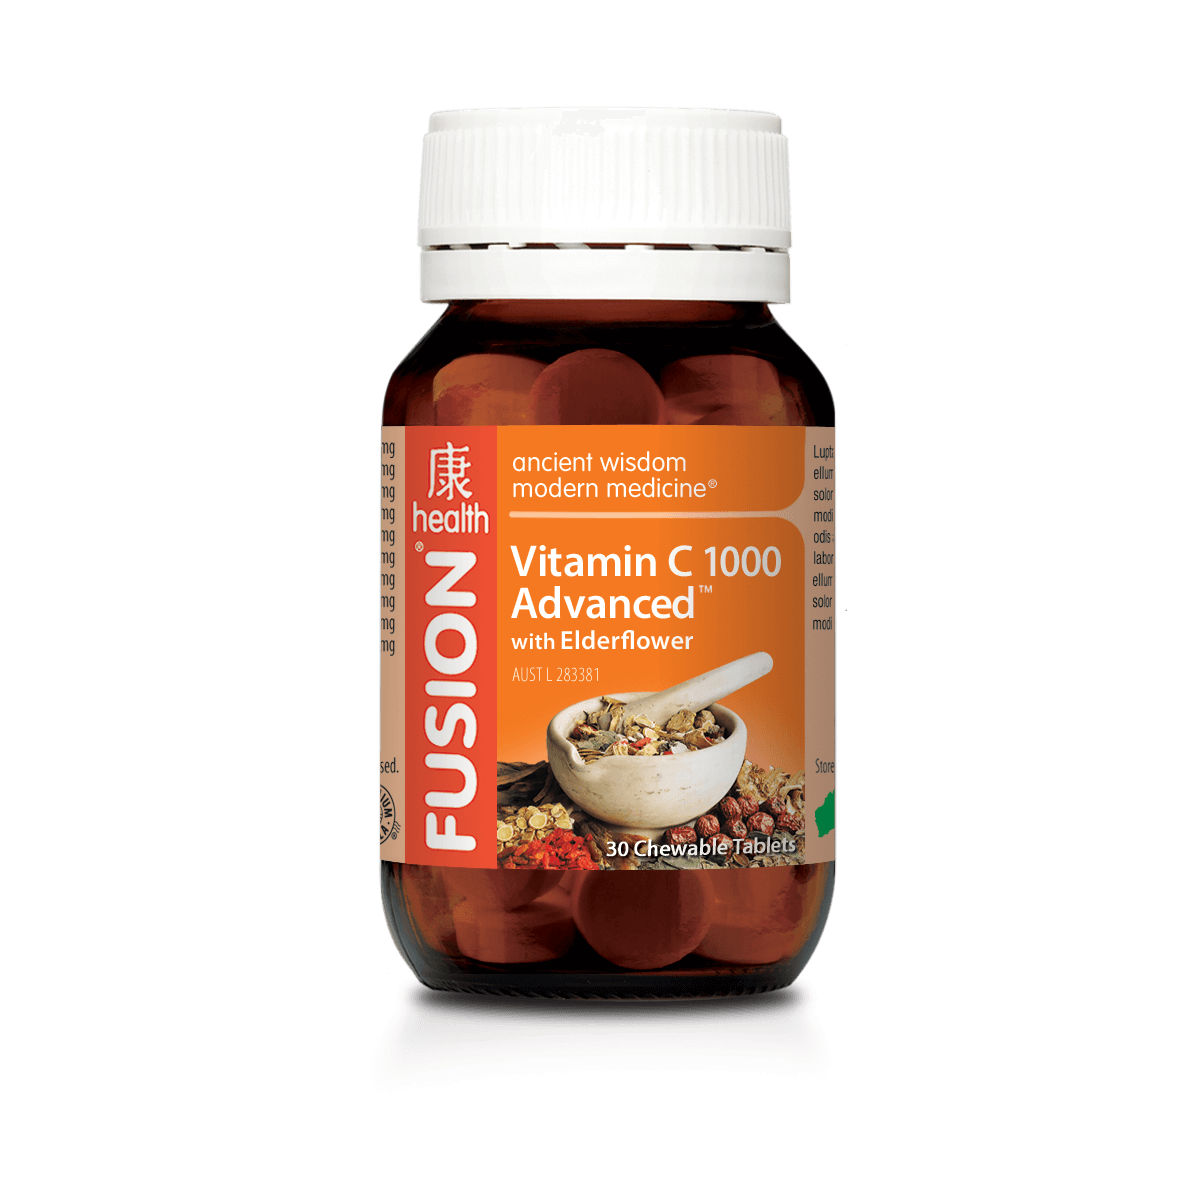 Vitamin C 1000 Advanced